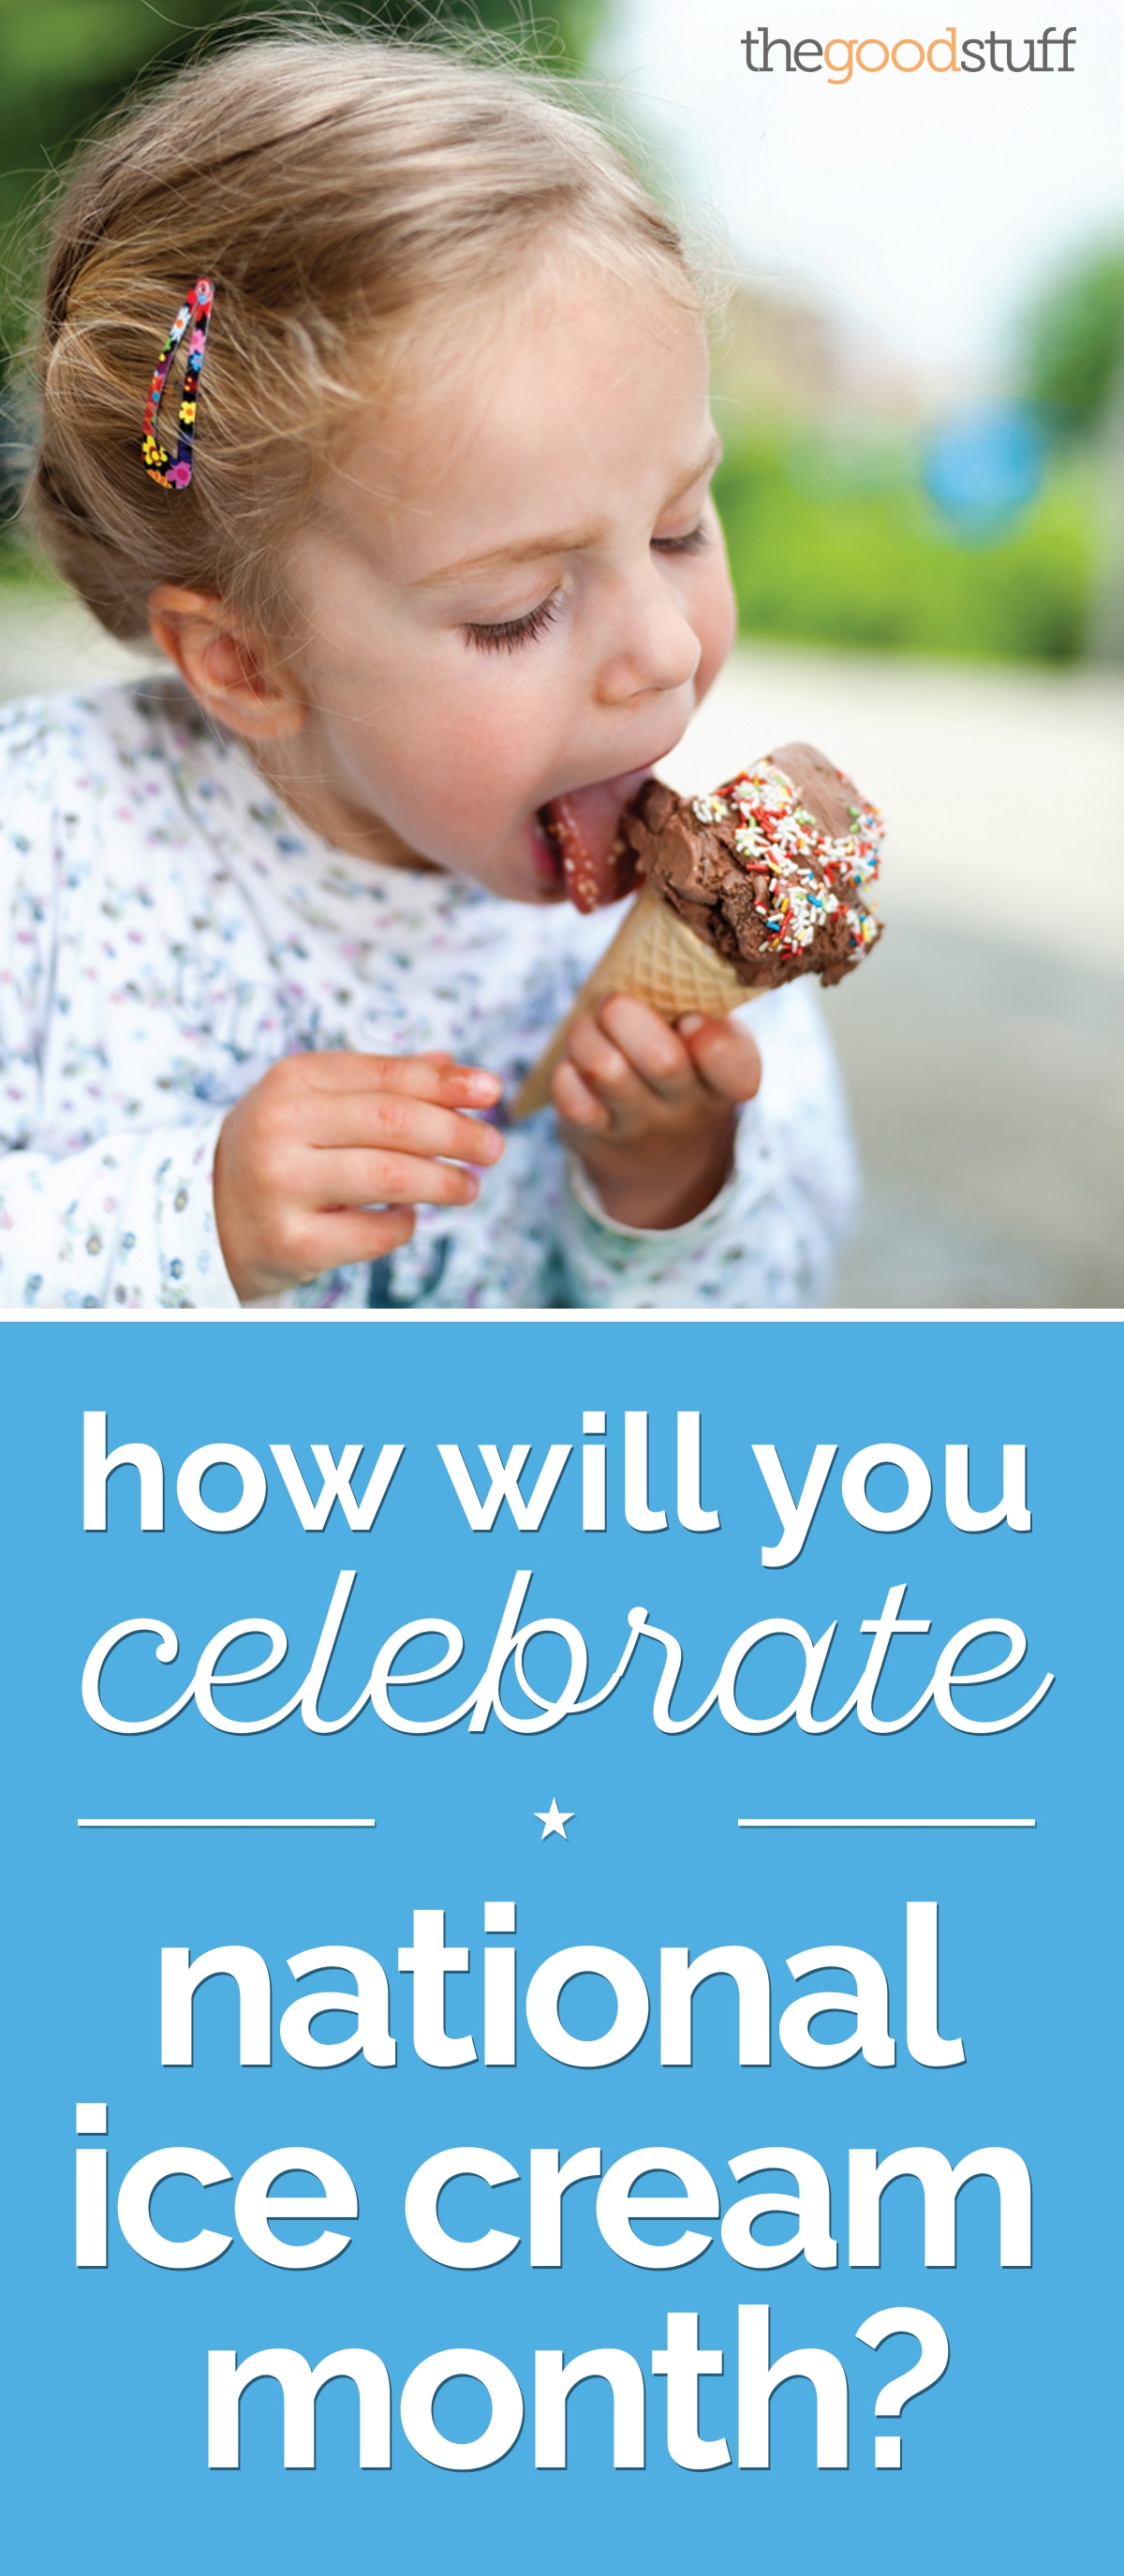 How Will You Celebrate National Ice Cream Month? | thegoodstuff